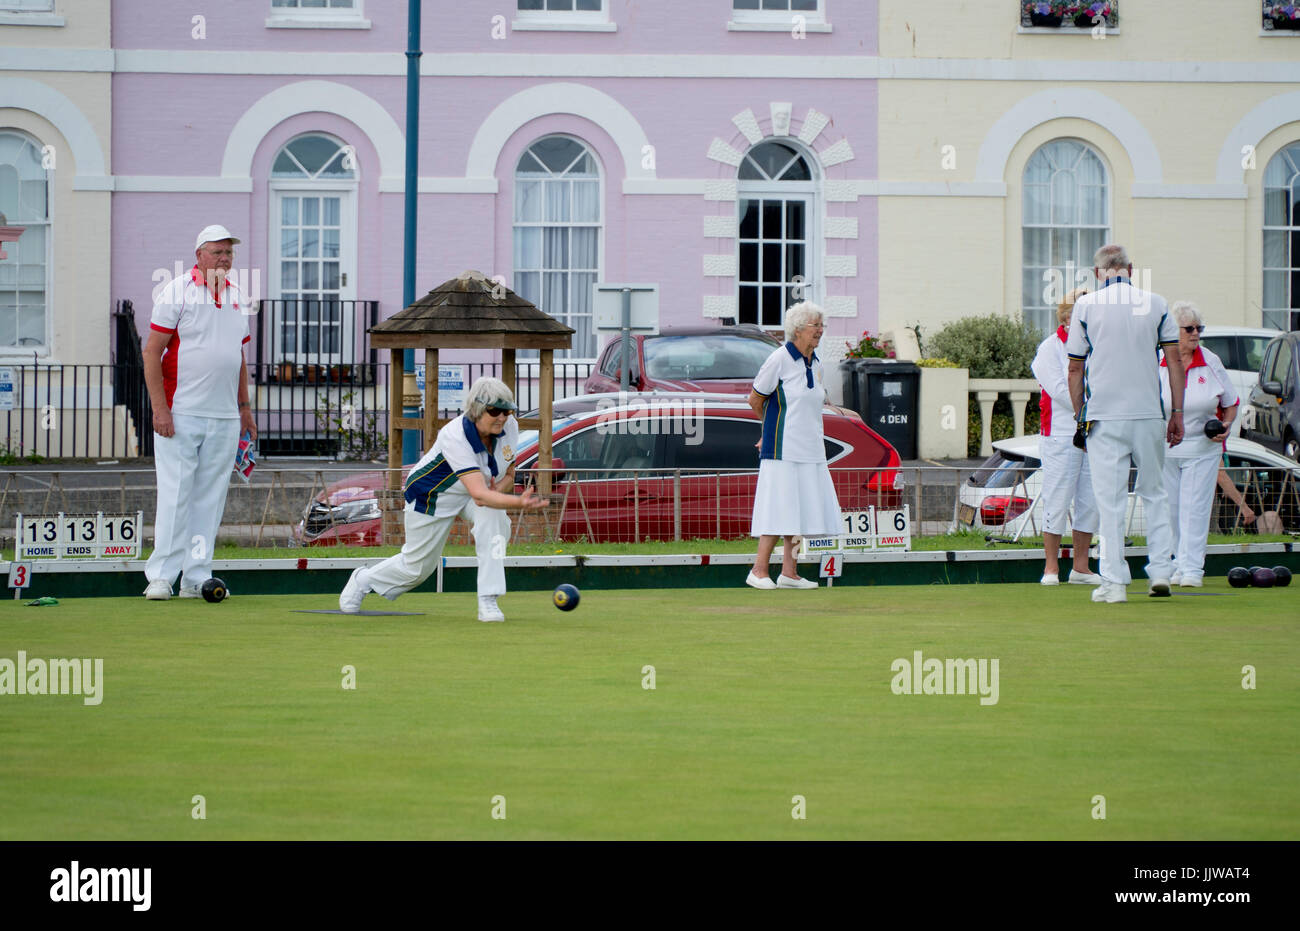 Men and women playing a game of lawn bowls in Teignmouth, Devon, England - Stock Image